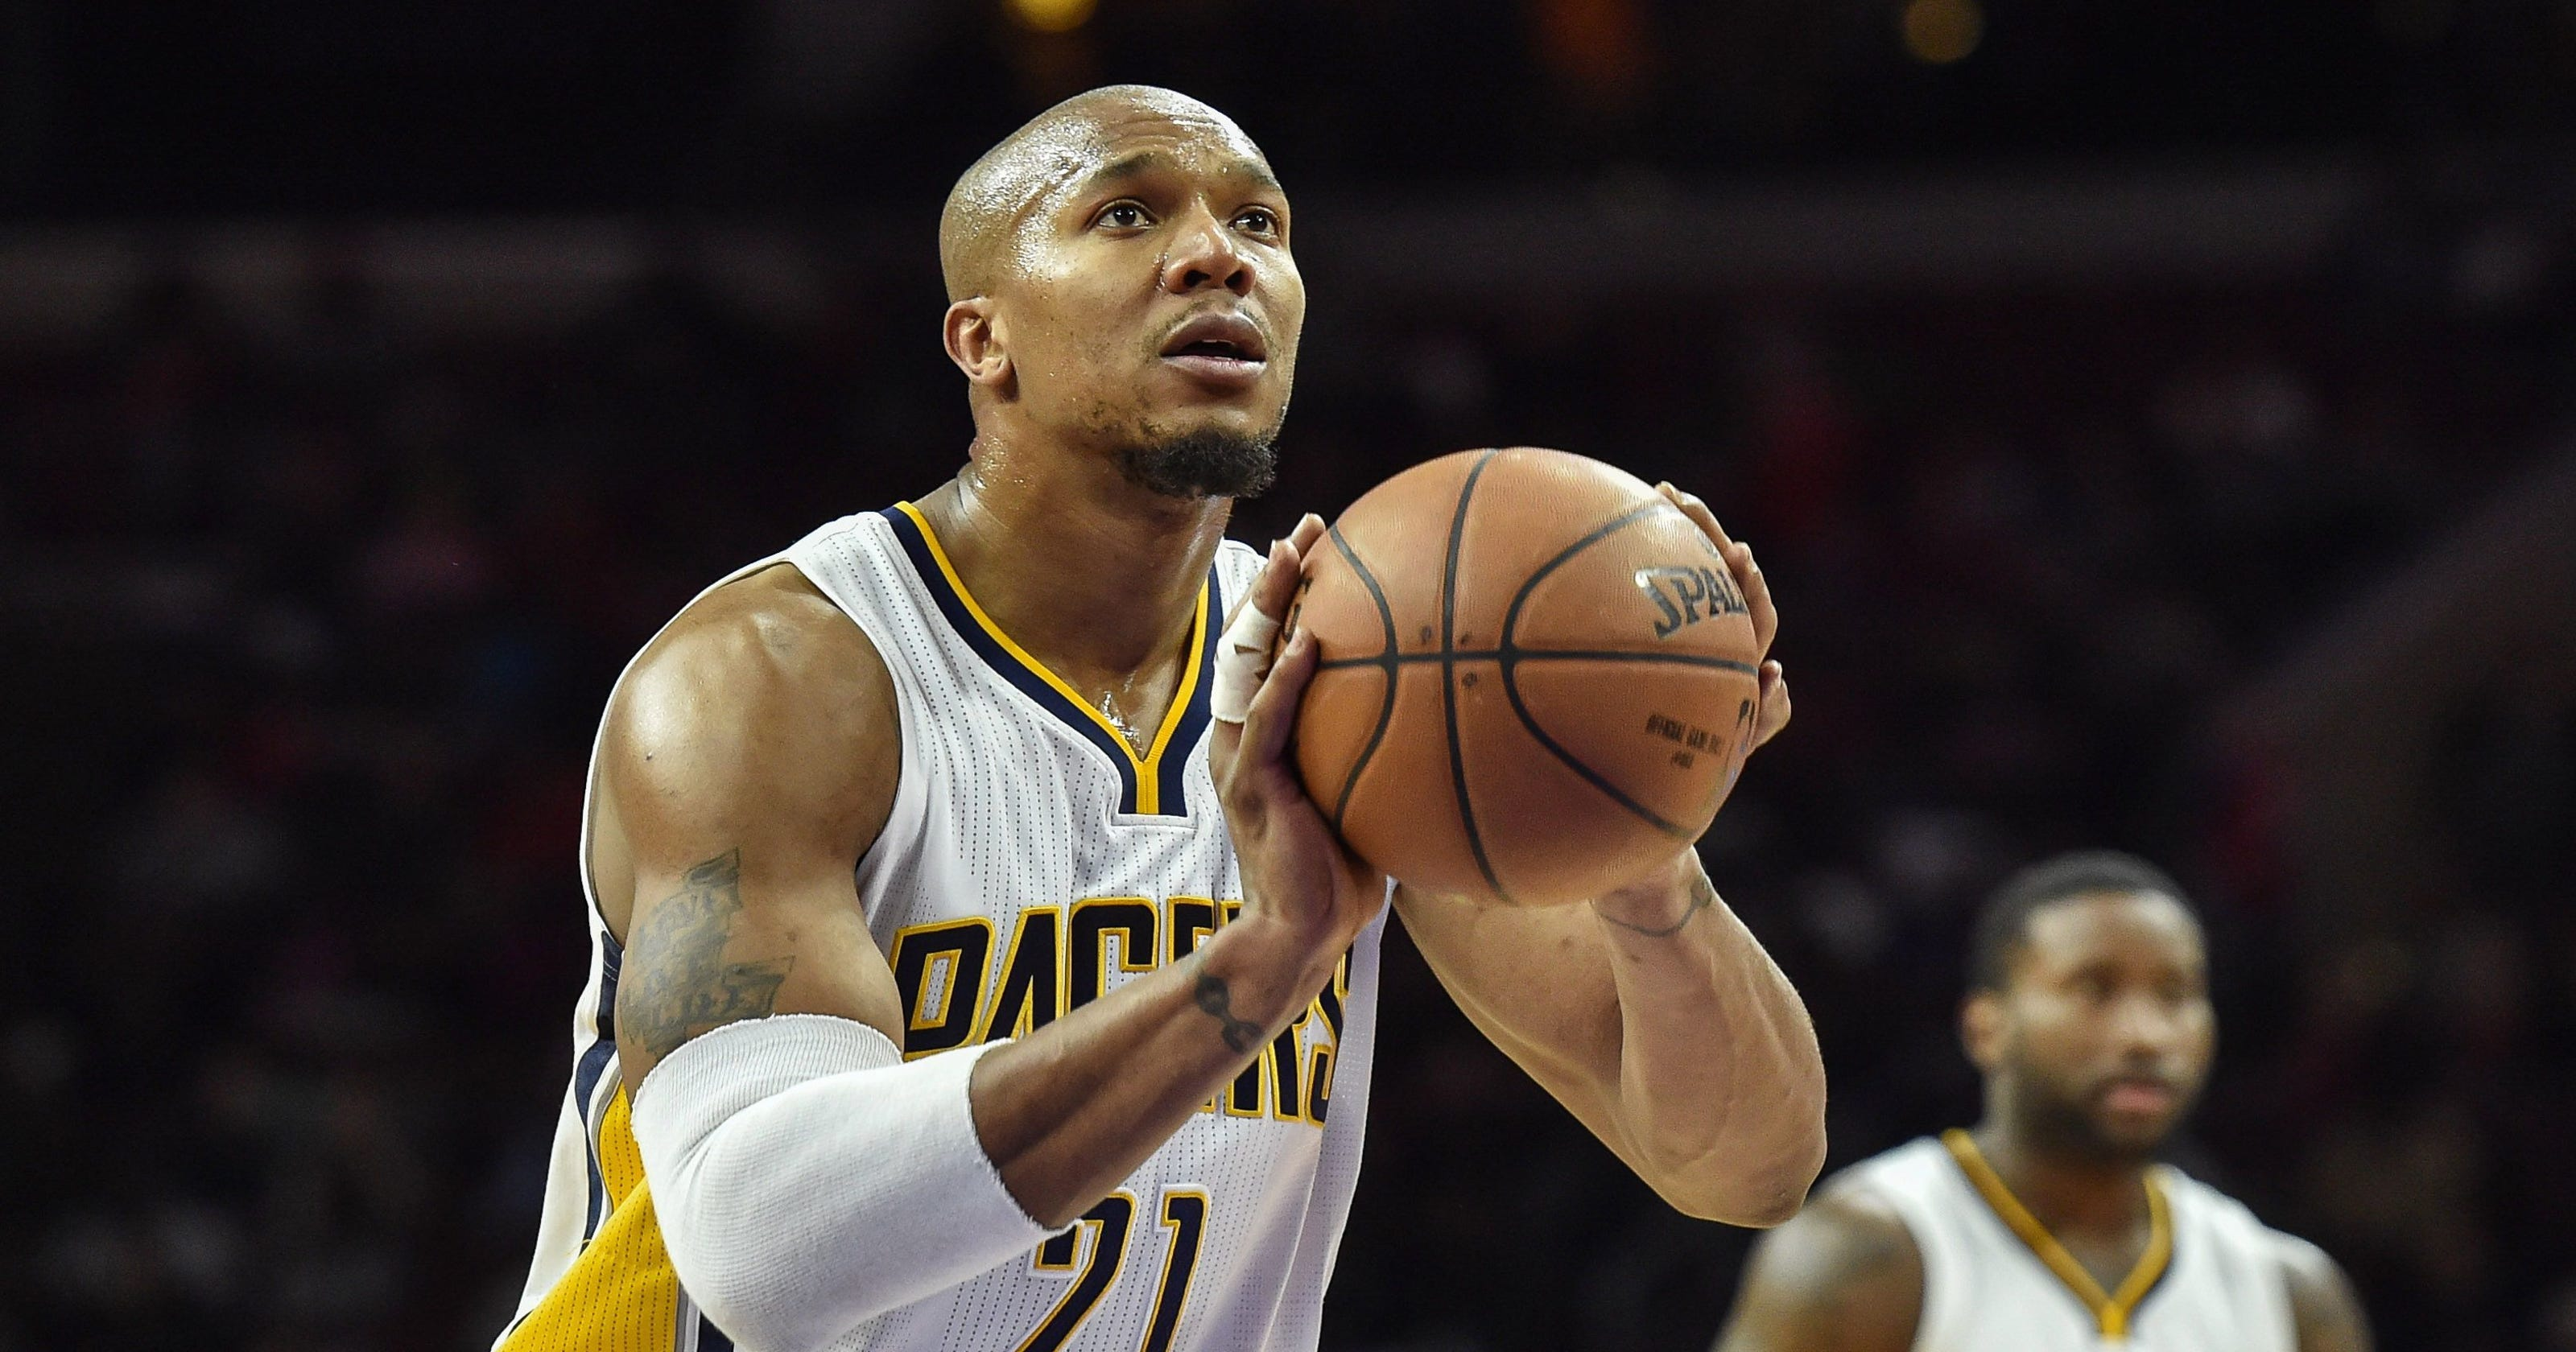 Report: Former Xavier great David West named COO of ...